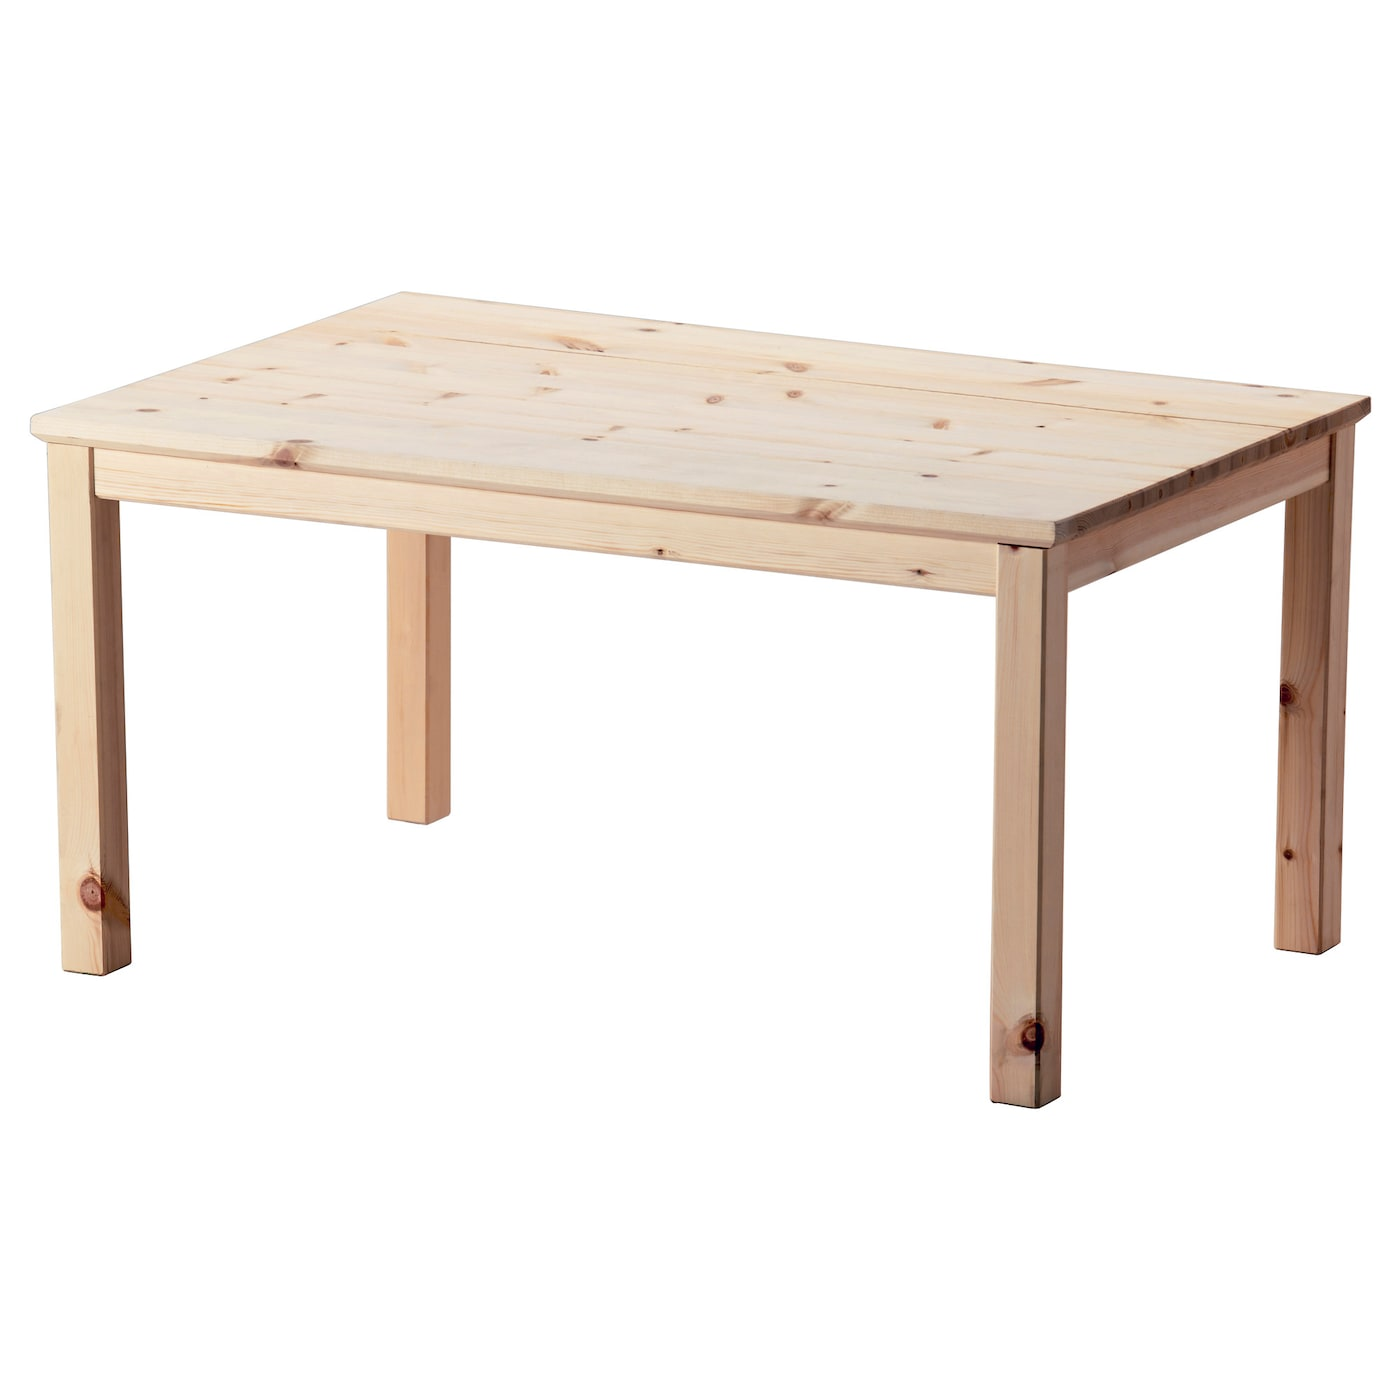 Norn 196 S Coffee Table Pine 89x59 Cm Ikea